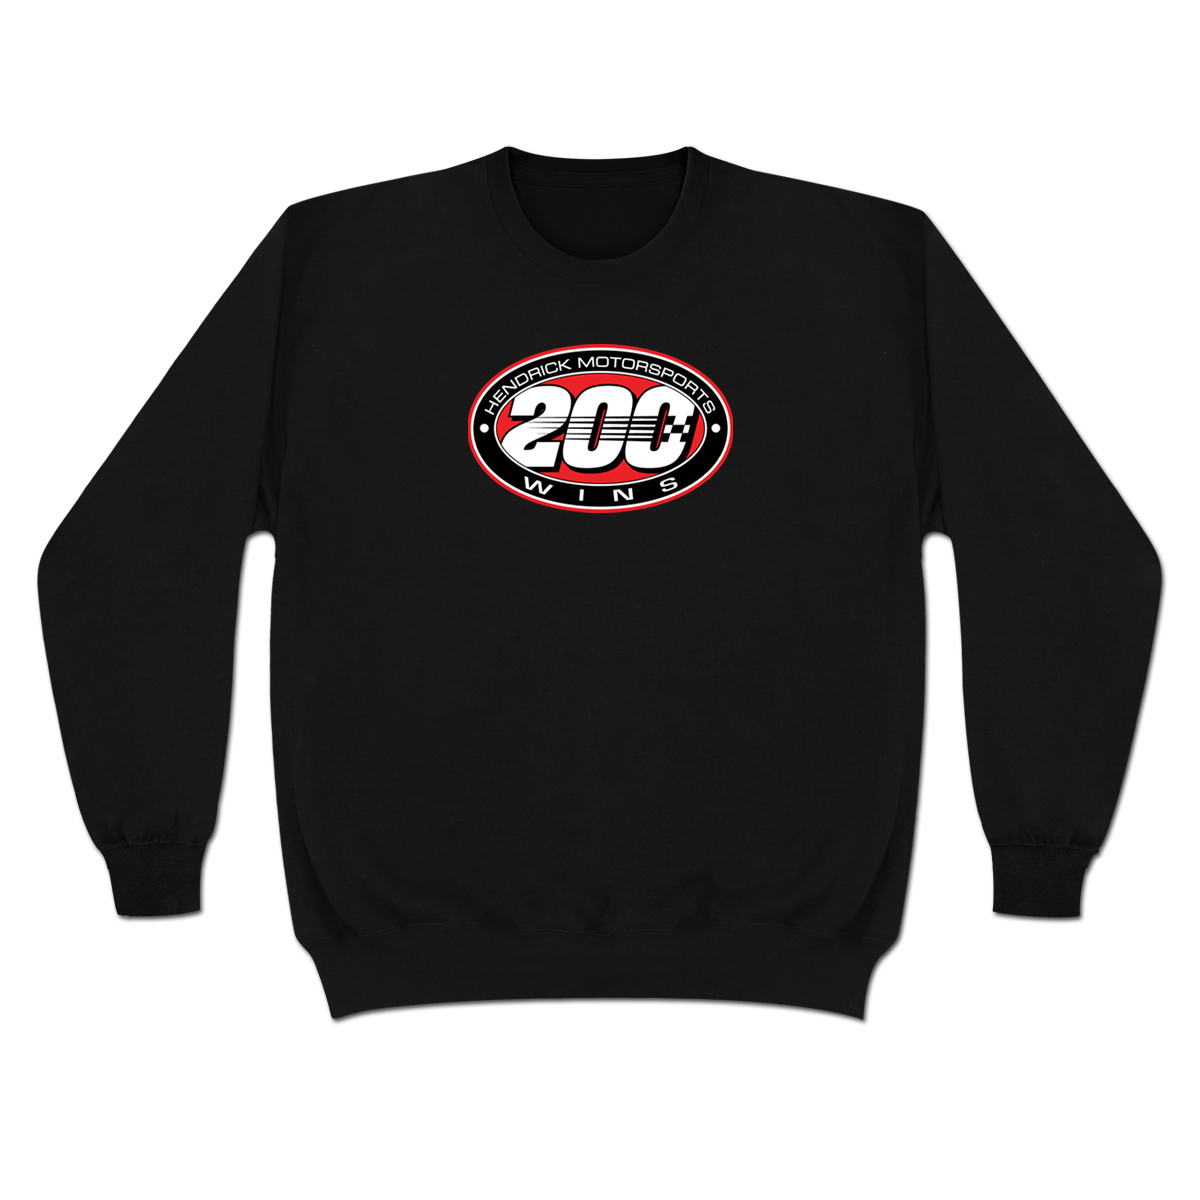 Hendrick Motorsports 200th Win Sweatshirt